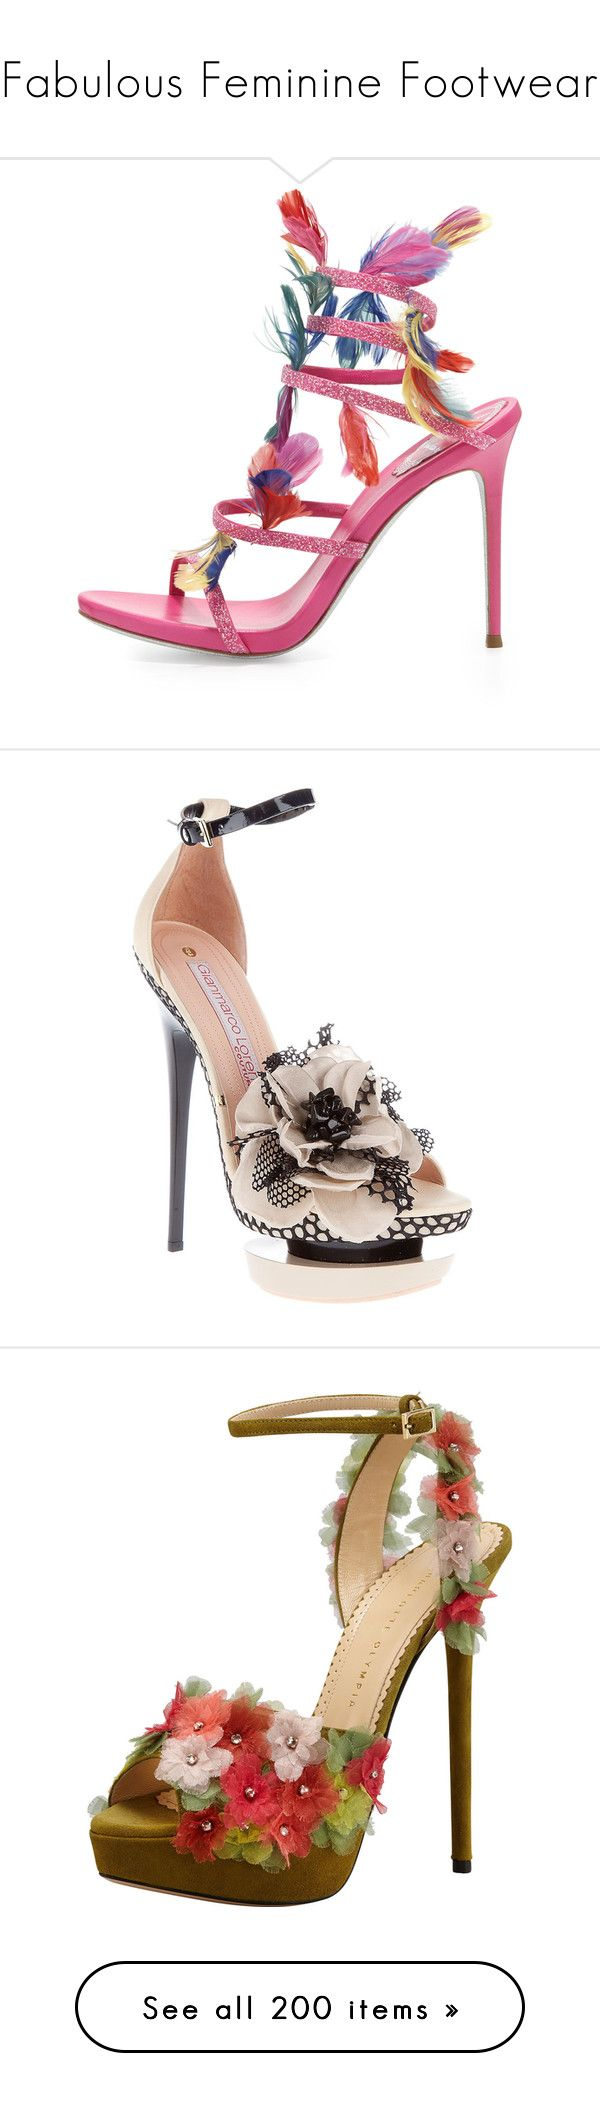 """""""Fabulous Feminine Footwear"""" by judymjohnson ❤ liked on Polyvore featuring shoes, sandals, heels, red, red high heel sandals, ankle strap heel sandals, strap heel sandals, heeled sandals, buckle sandals and ankle strap shoes"""